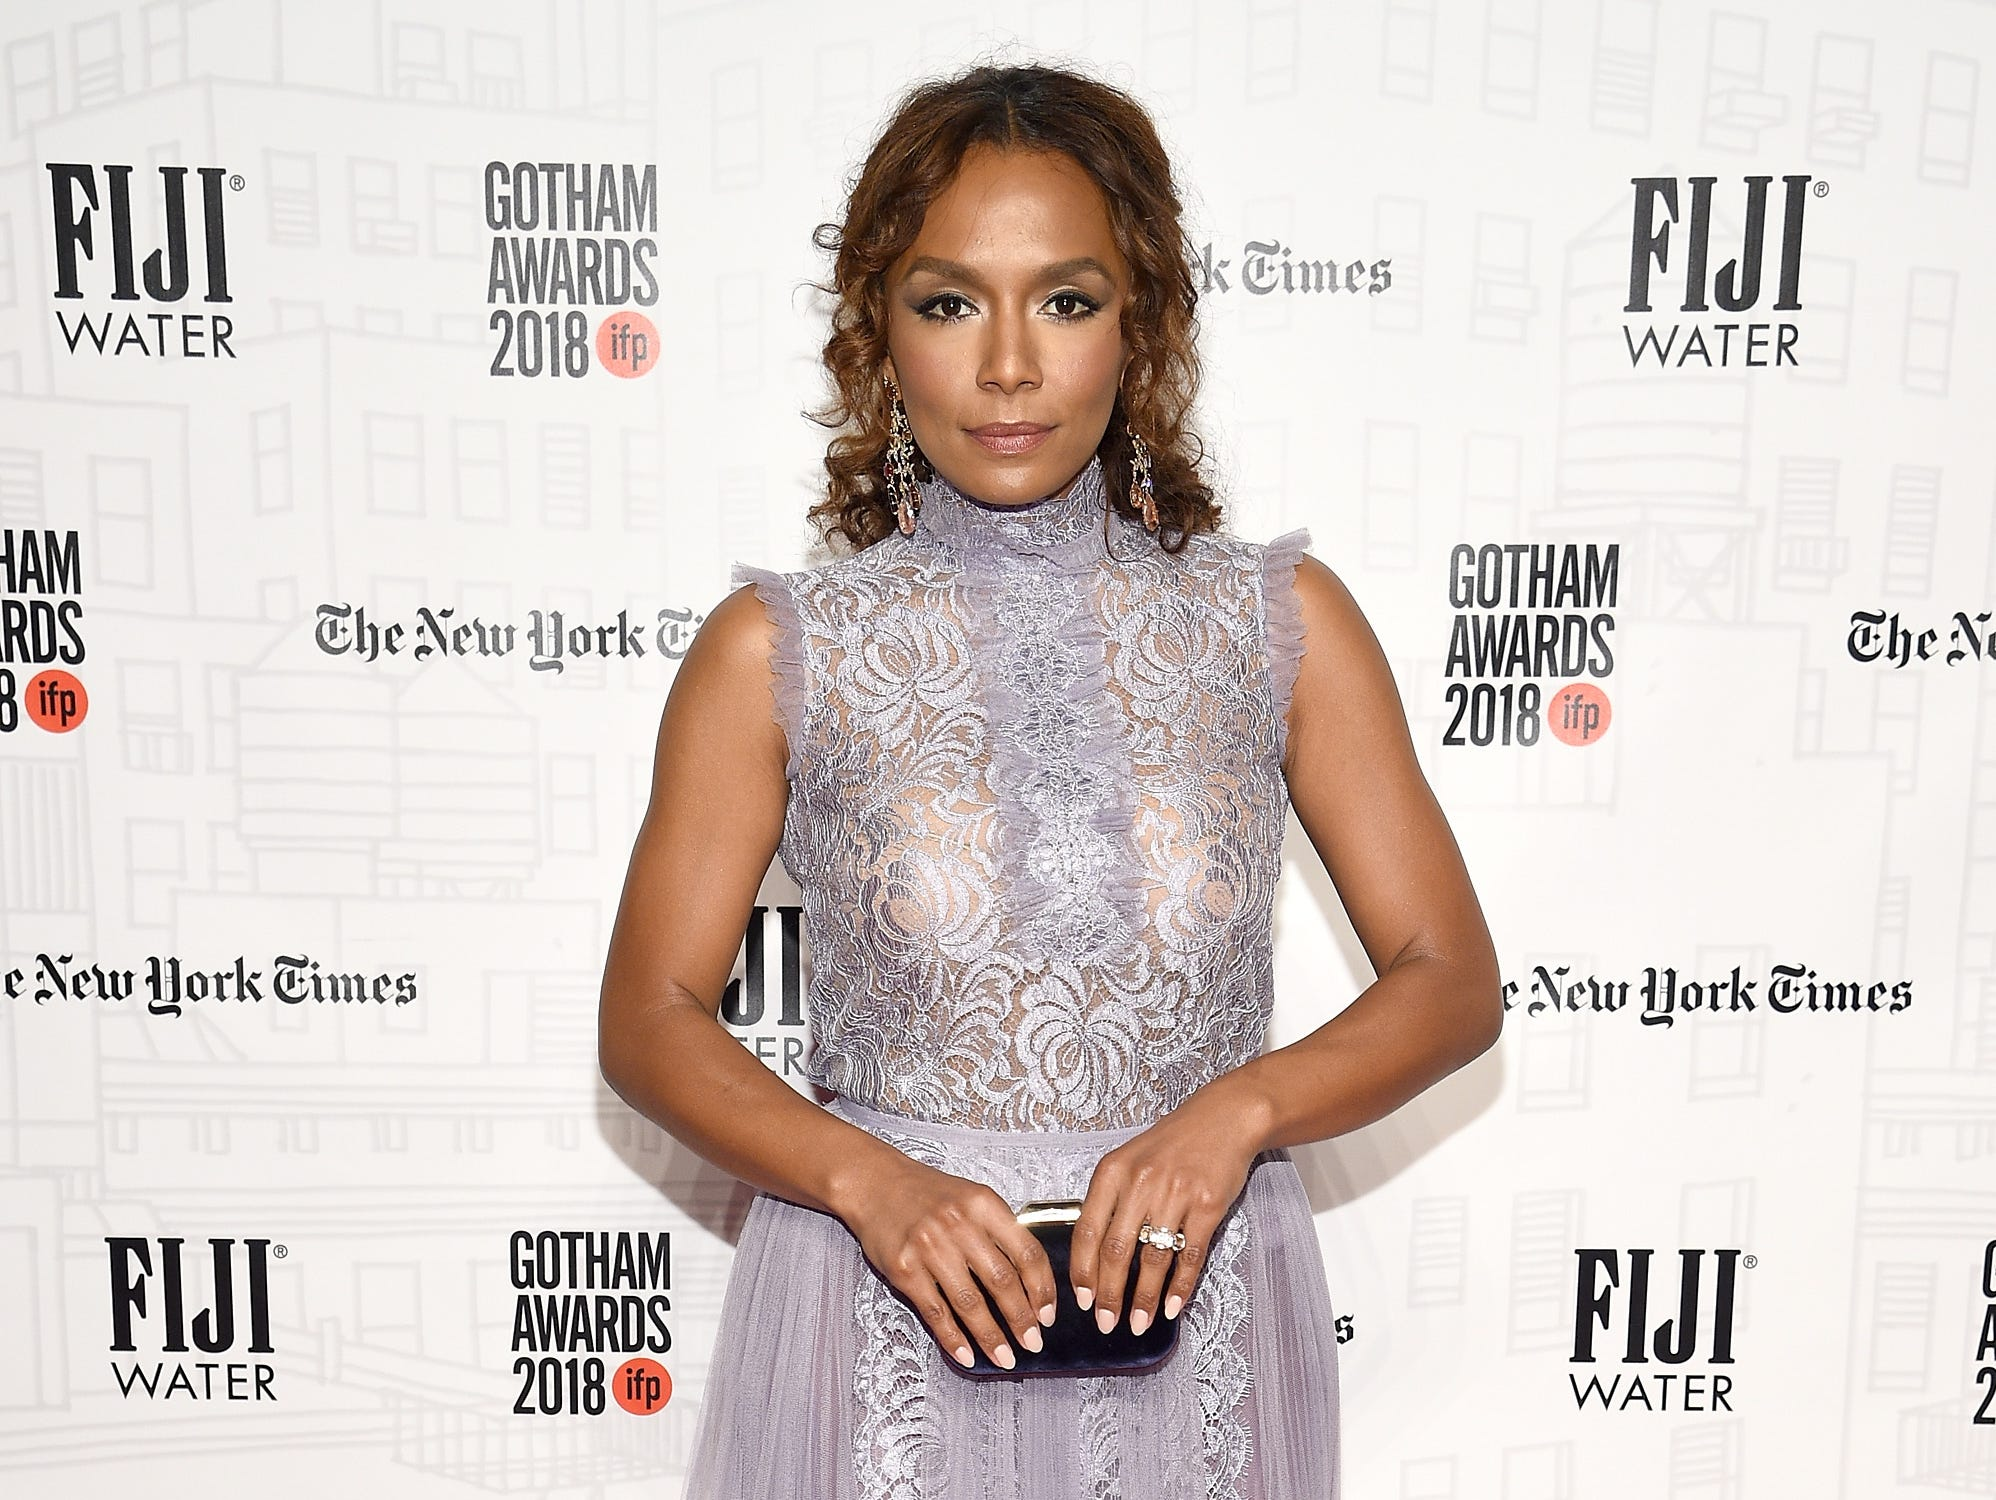 NEW YORK, NY - NOVEMBER 26: Janet Mock attends IFP's 27th Annual Gotham Independent Film Awards at Cipriani, Wall Street on November 26, 2018 in New York City.  (Photo by Dimitrios Kambouris/Getty Images for IFP) ORG XMIT: 775261541 ORIG FILE ID: 1065563092